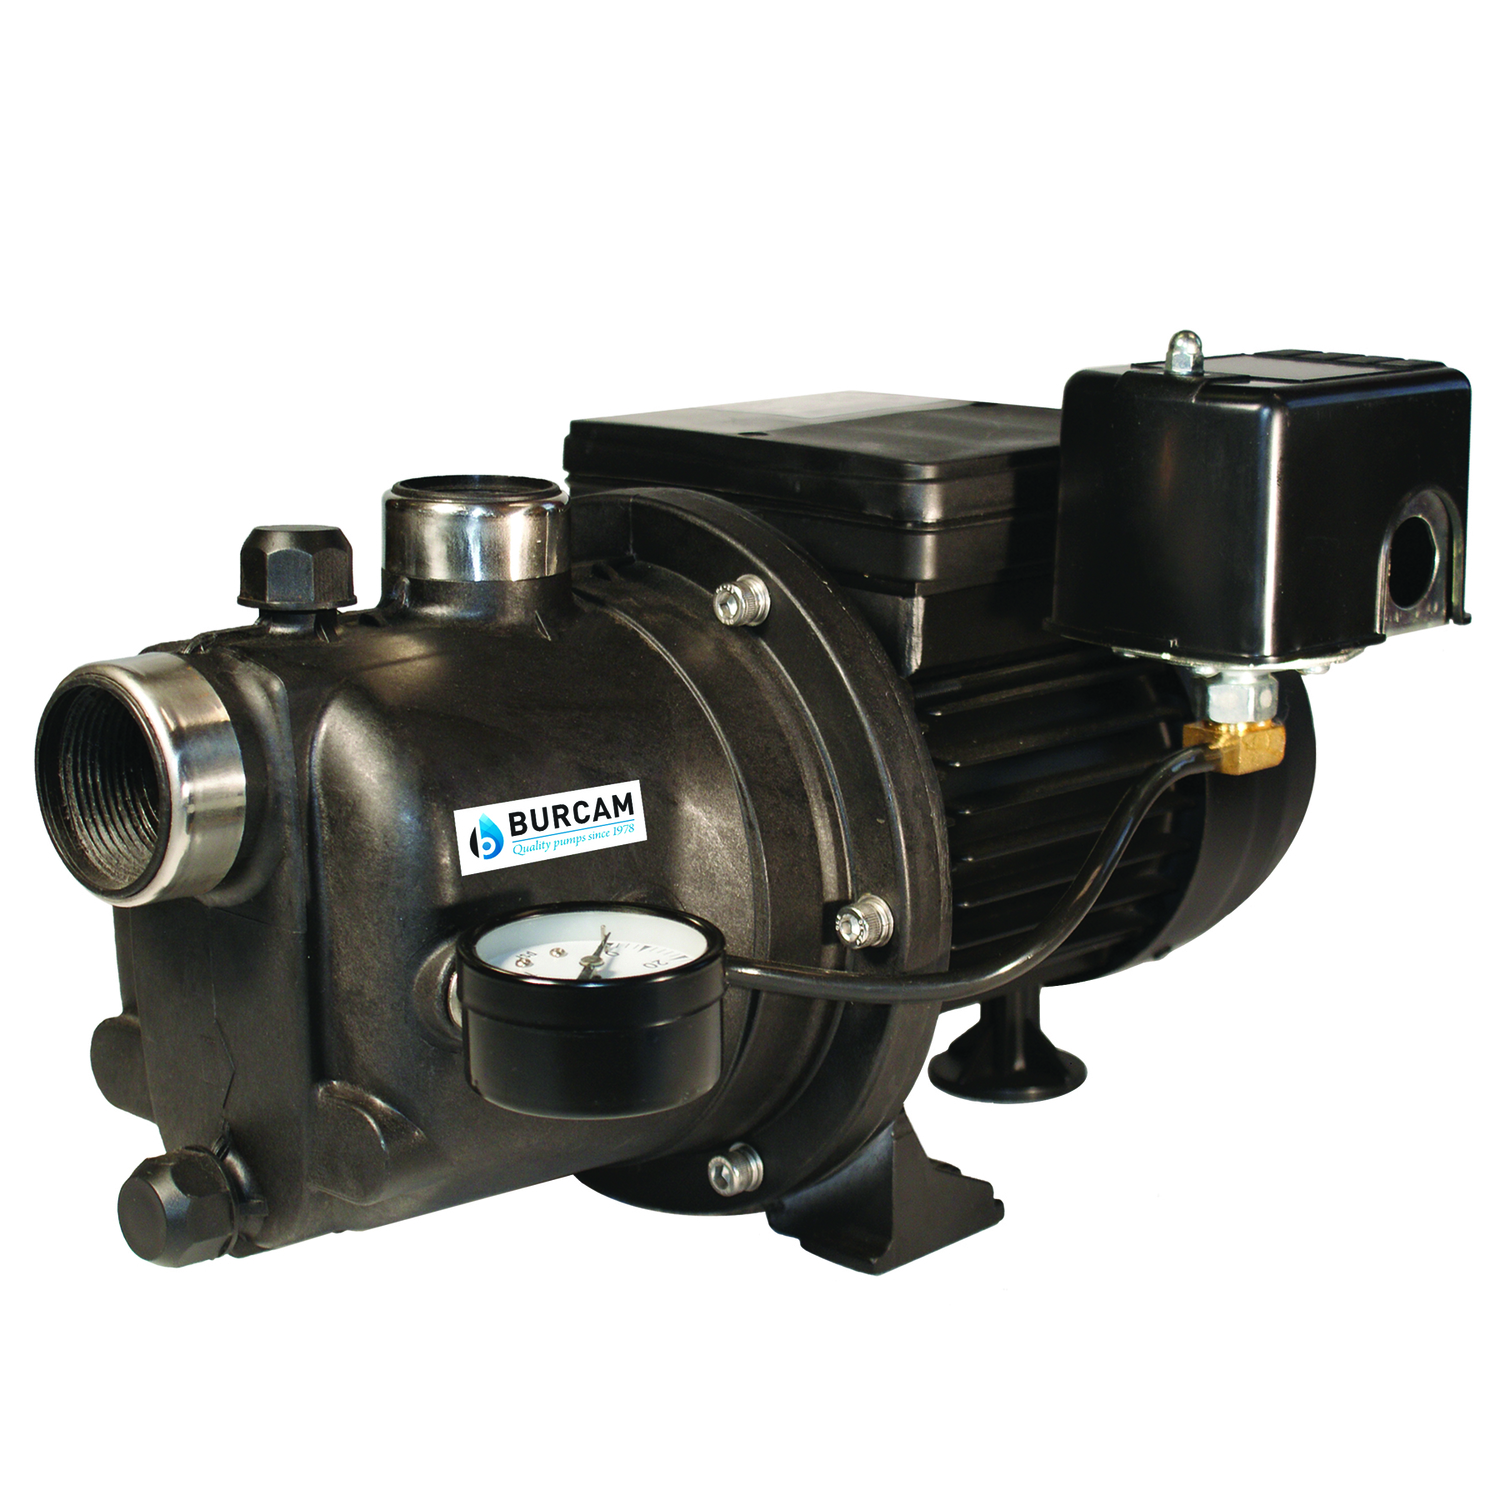 Burcam  Thermoplastic  Shallow Well Jet Pump  3/4 hp 850